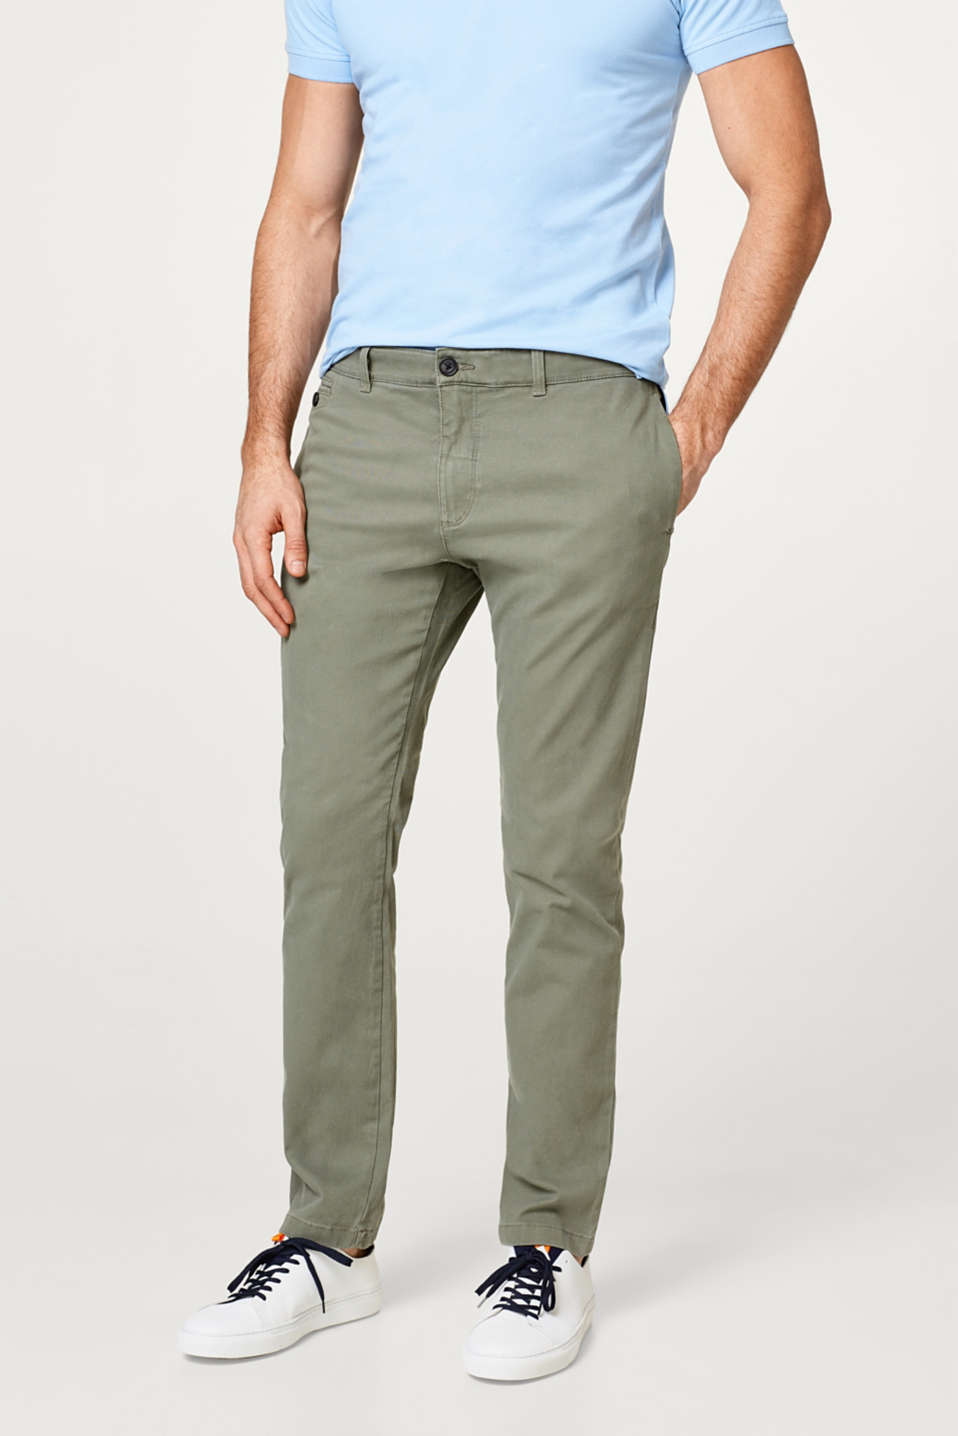 Esprit - Textured chinos in stretch cotton